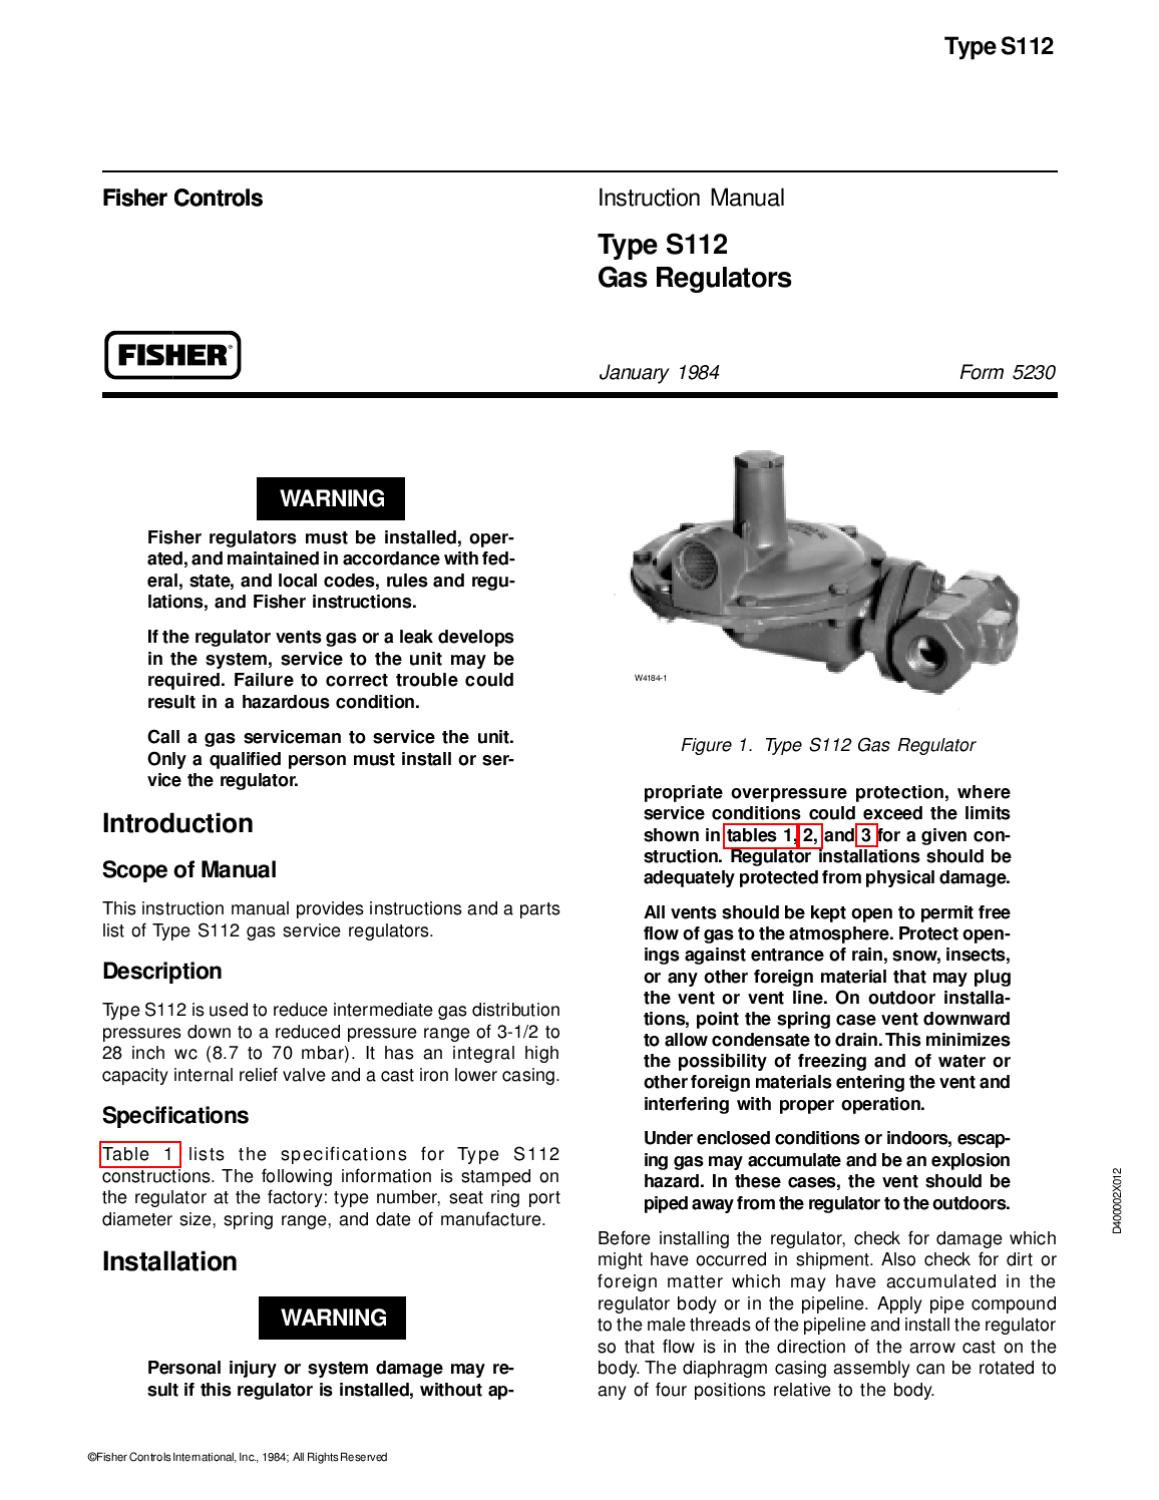 S112 Instruction Manual by RMC Process Controls & Filtration